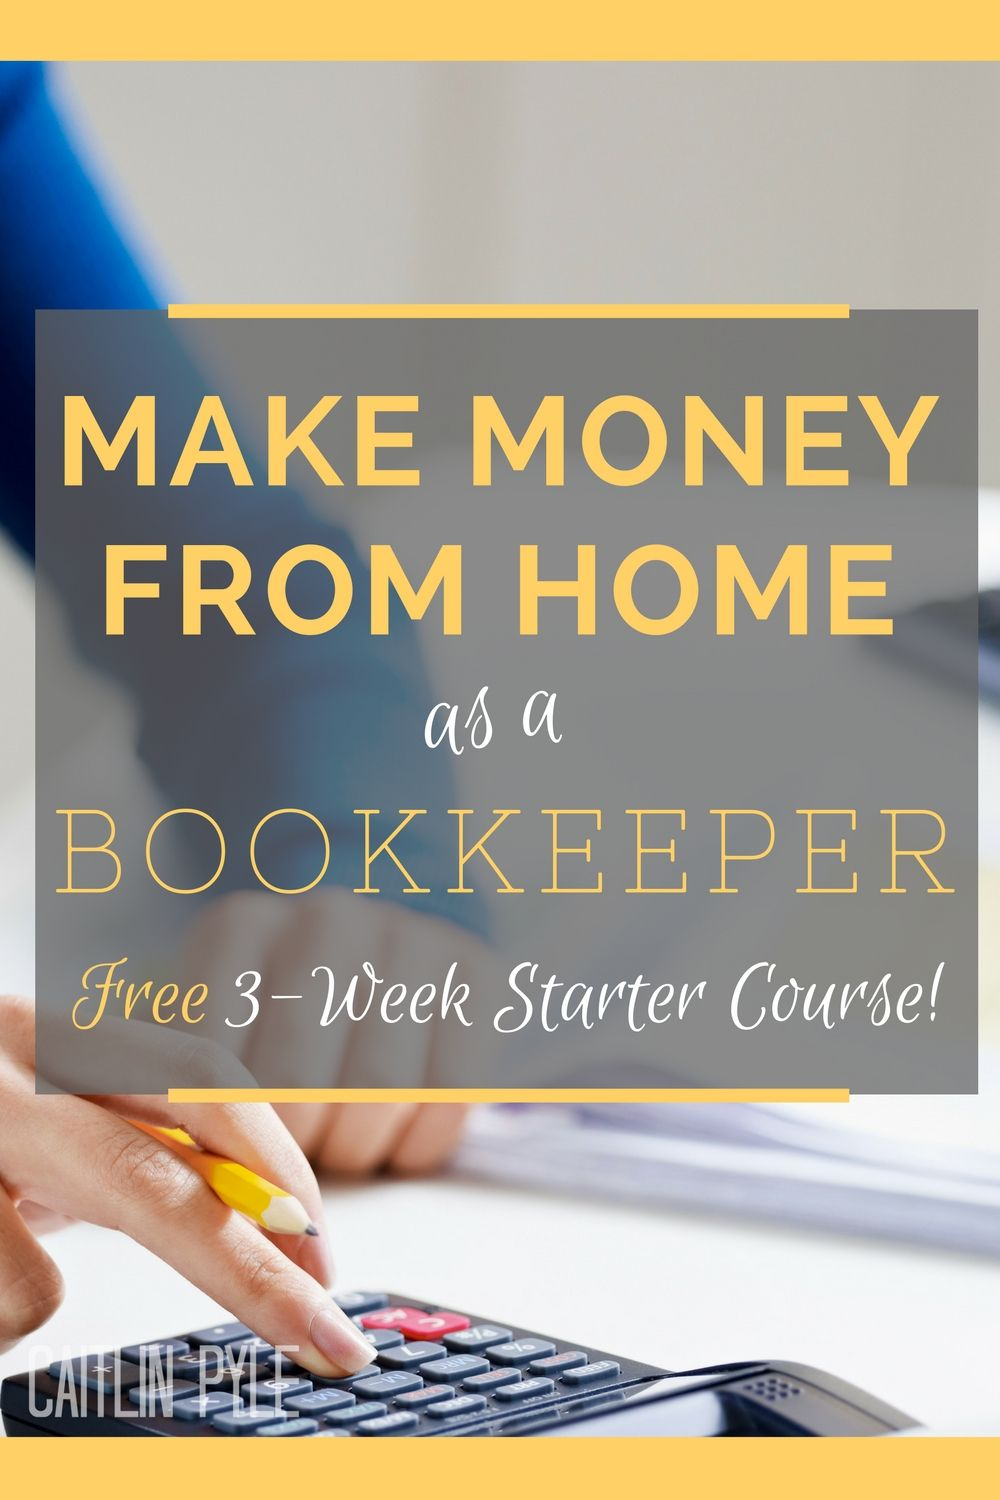 Learn To Start A Bookkeeping Business From Home Get Started Working With This Free 3 Week Starter Course Ben Robinson Affiliate